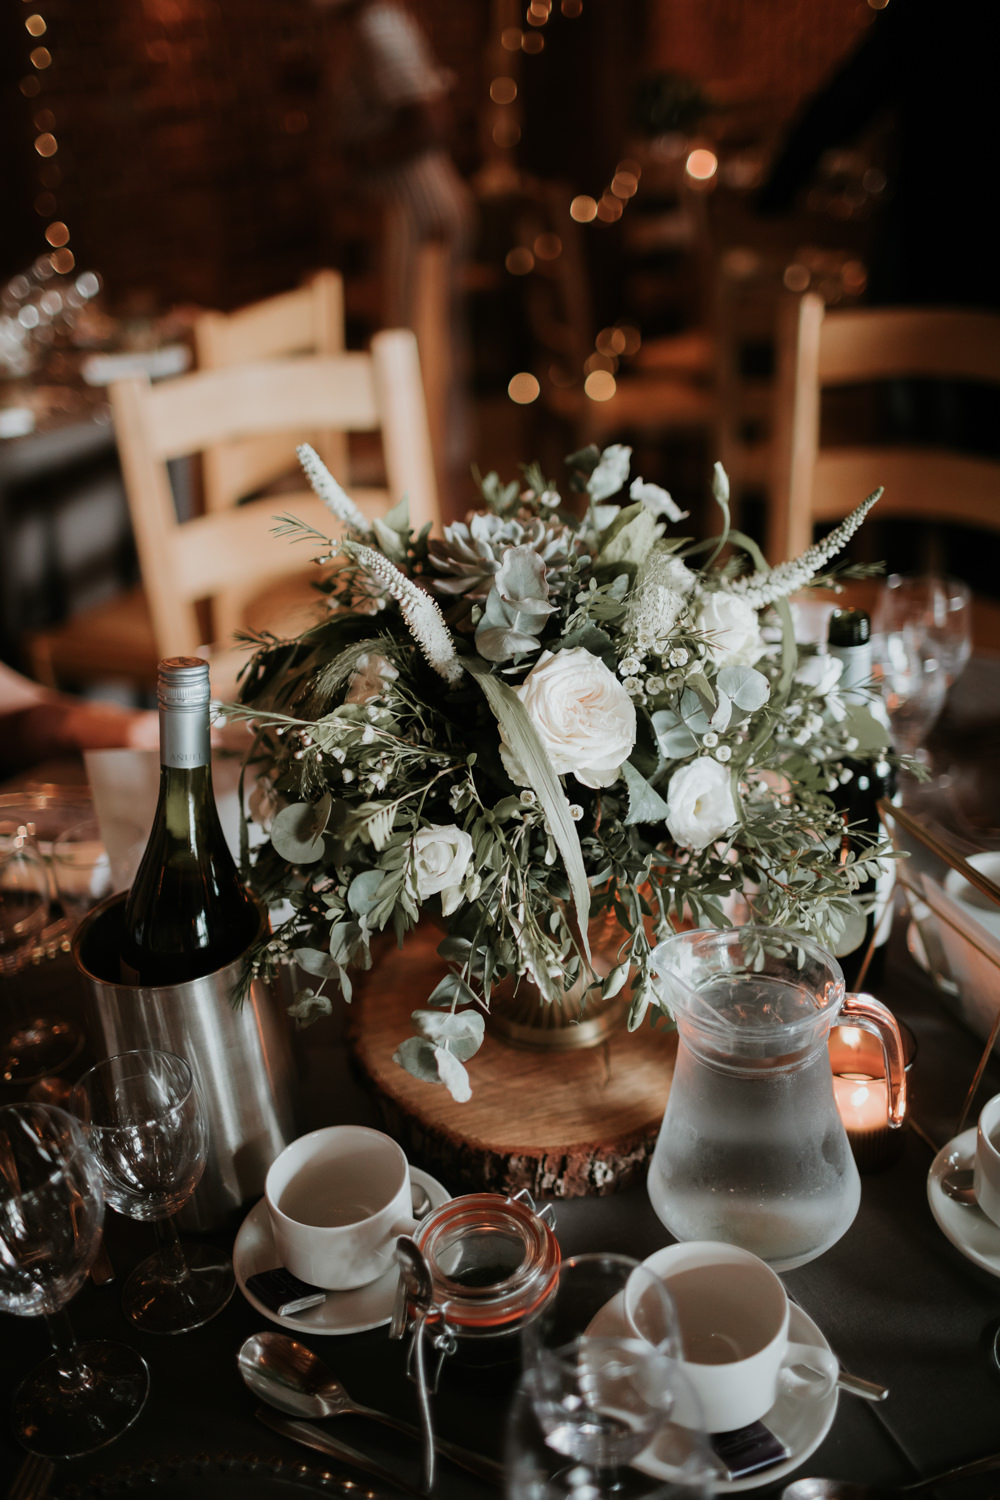 Round Tables Grey Table Cloths Flowers Centrepiece Greenery Foliage Ferry House Inn Wedding Paul Fuller Kent Photography